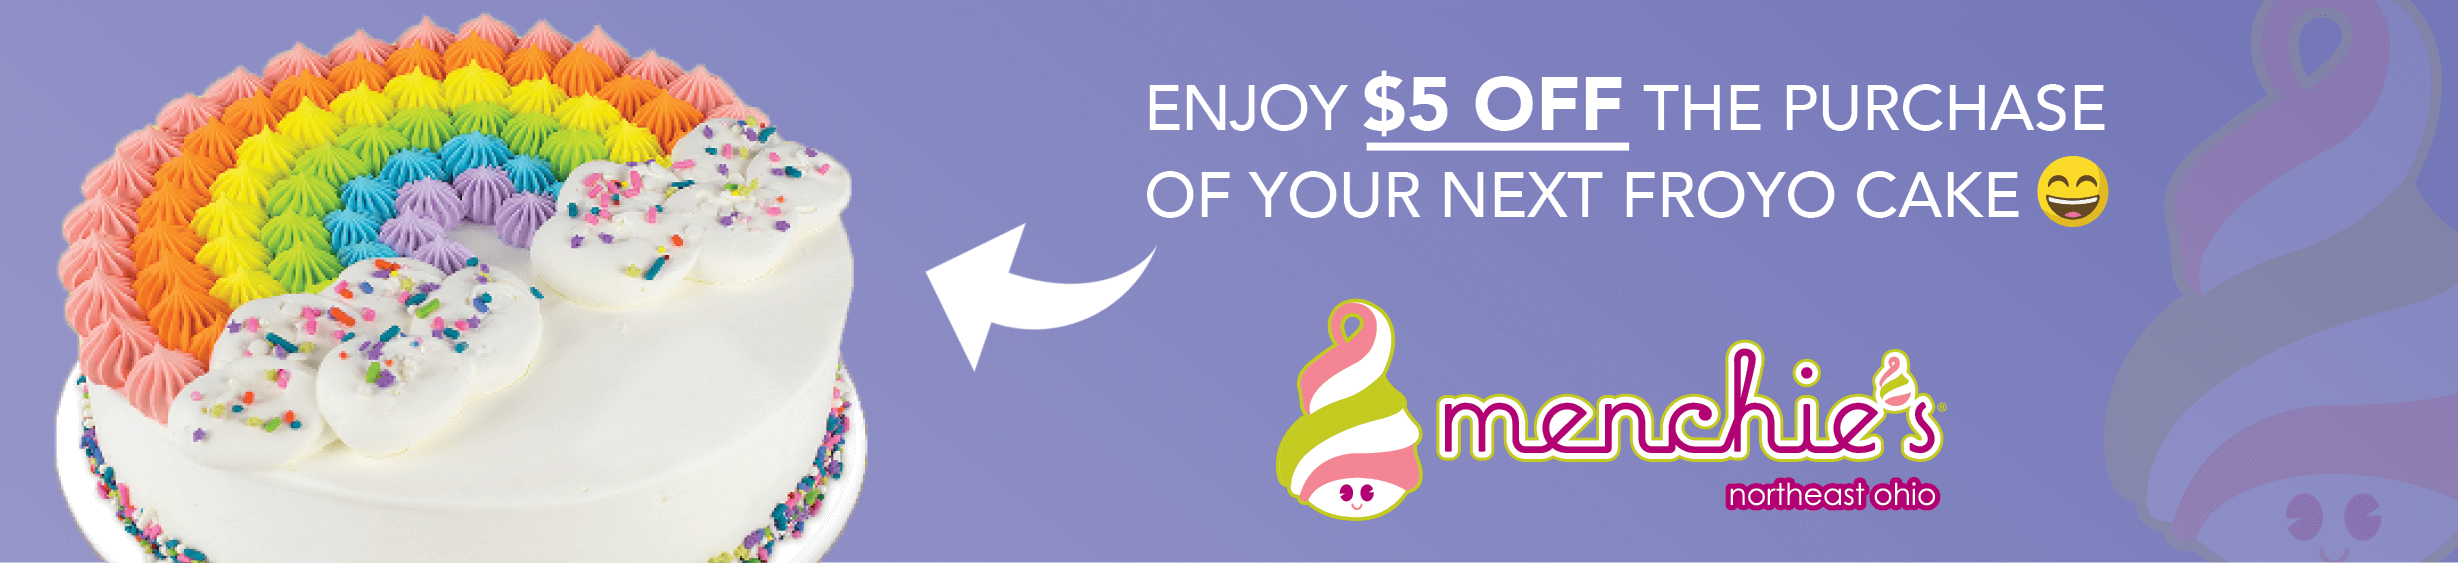 Menchie's Northeast Ohio